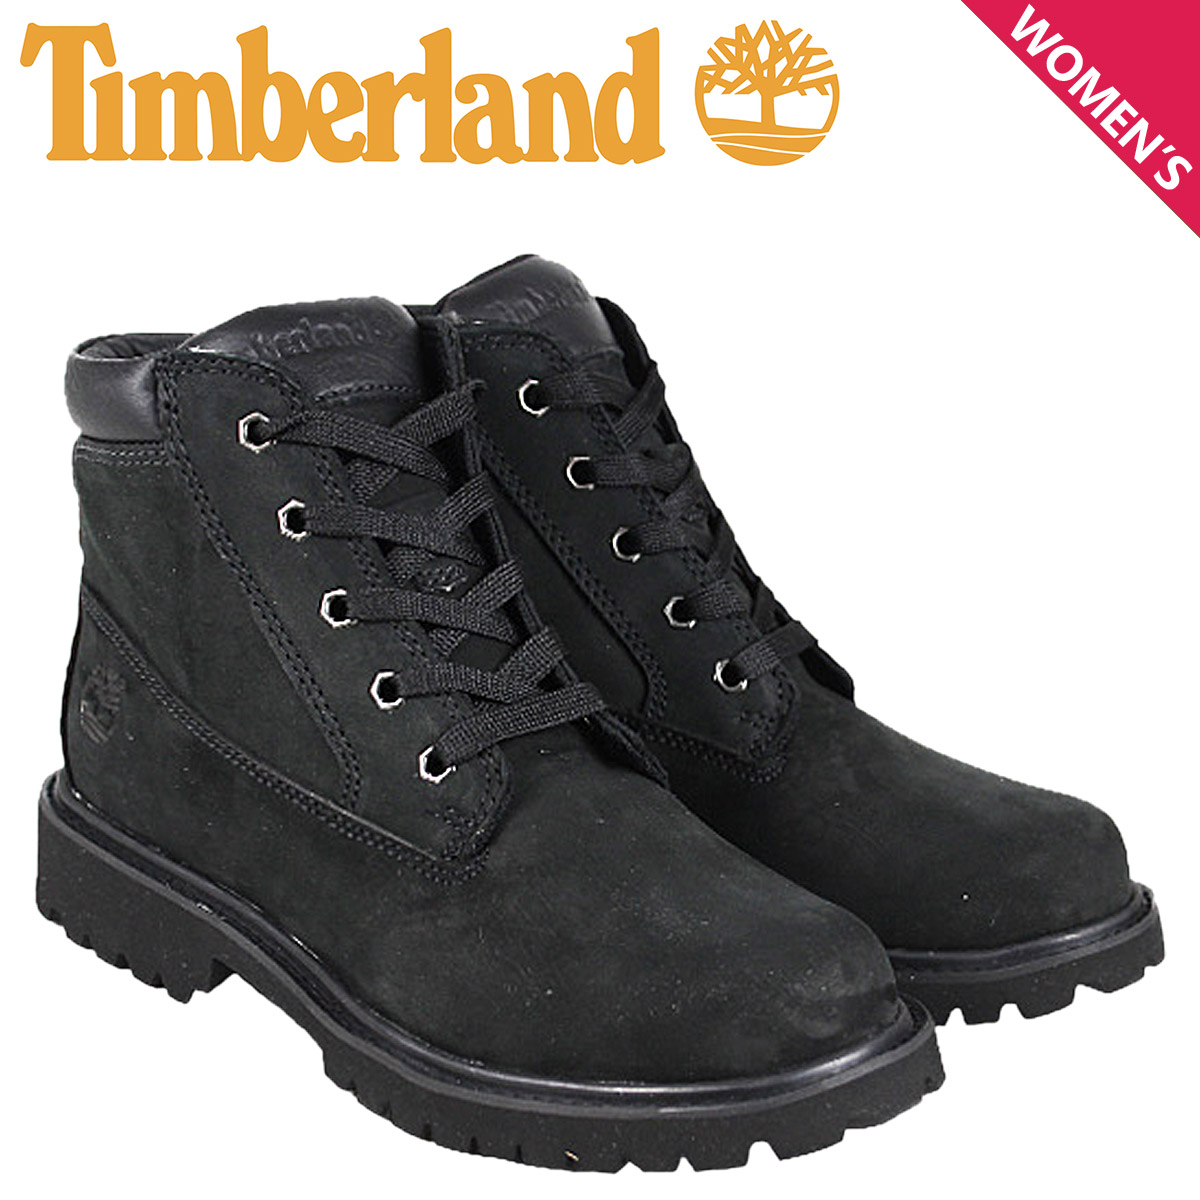 [SOLD OUT] Timberland Timberland Donna boots black 58325 DONNA BOOT nubuck  youth kids child GS Lady's